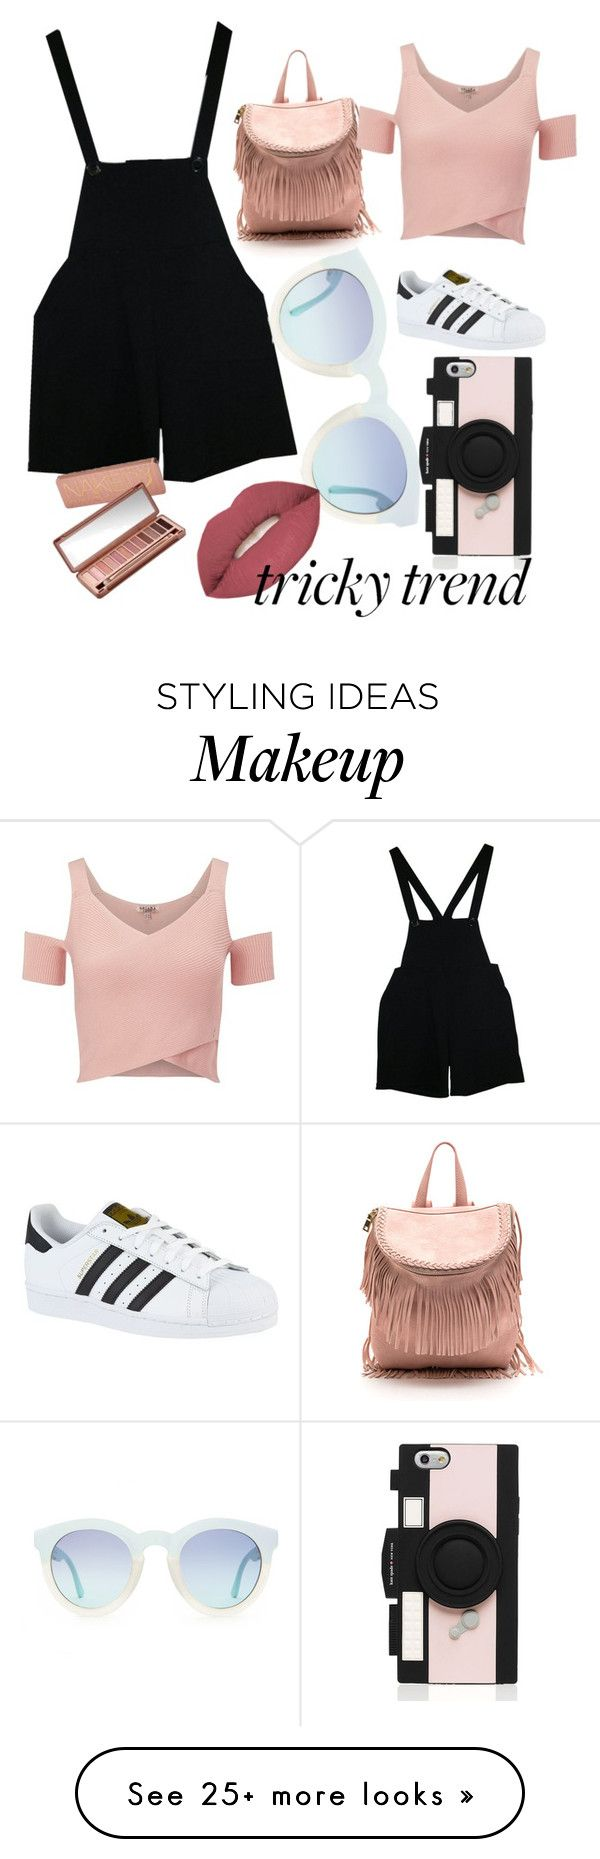 """""""Yeay"""" by lliiss on Polyvore featuring American Apparel, adidas, Kate Spade, Smashbox, Urban Decay, Lipsy, TrickyTrend and overalls"""